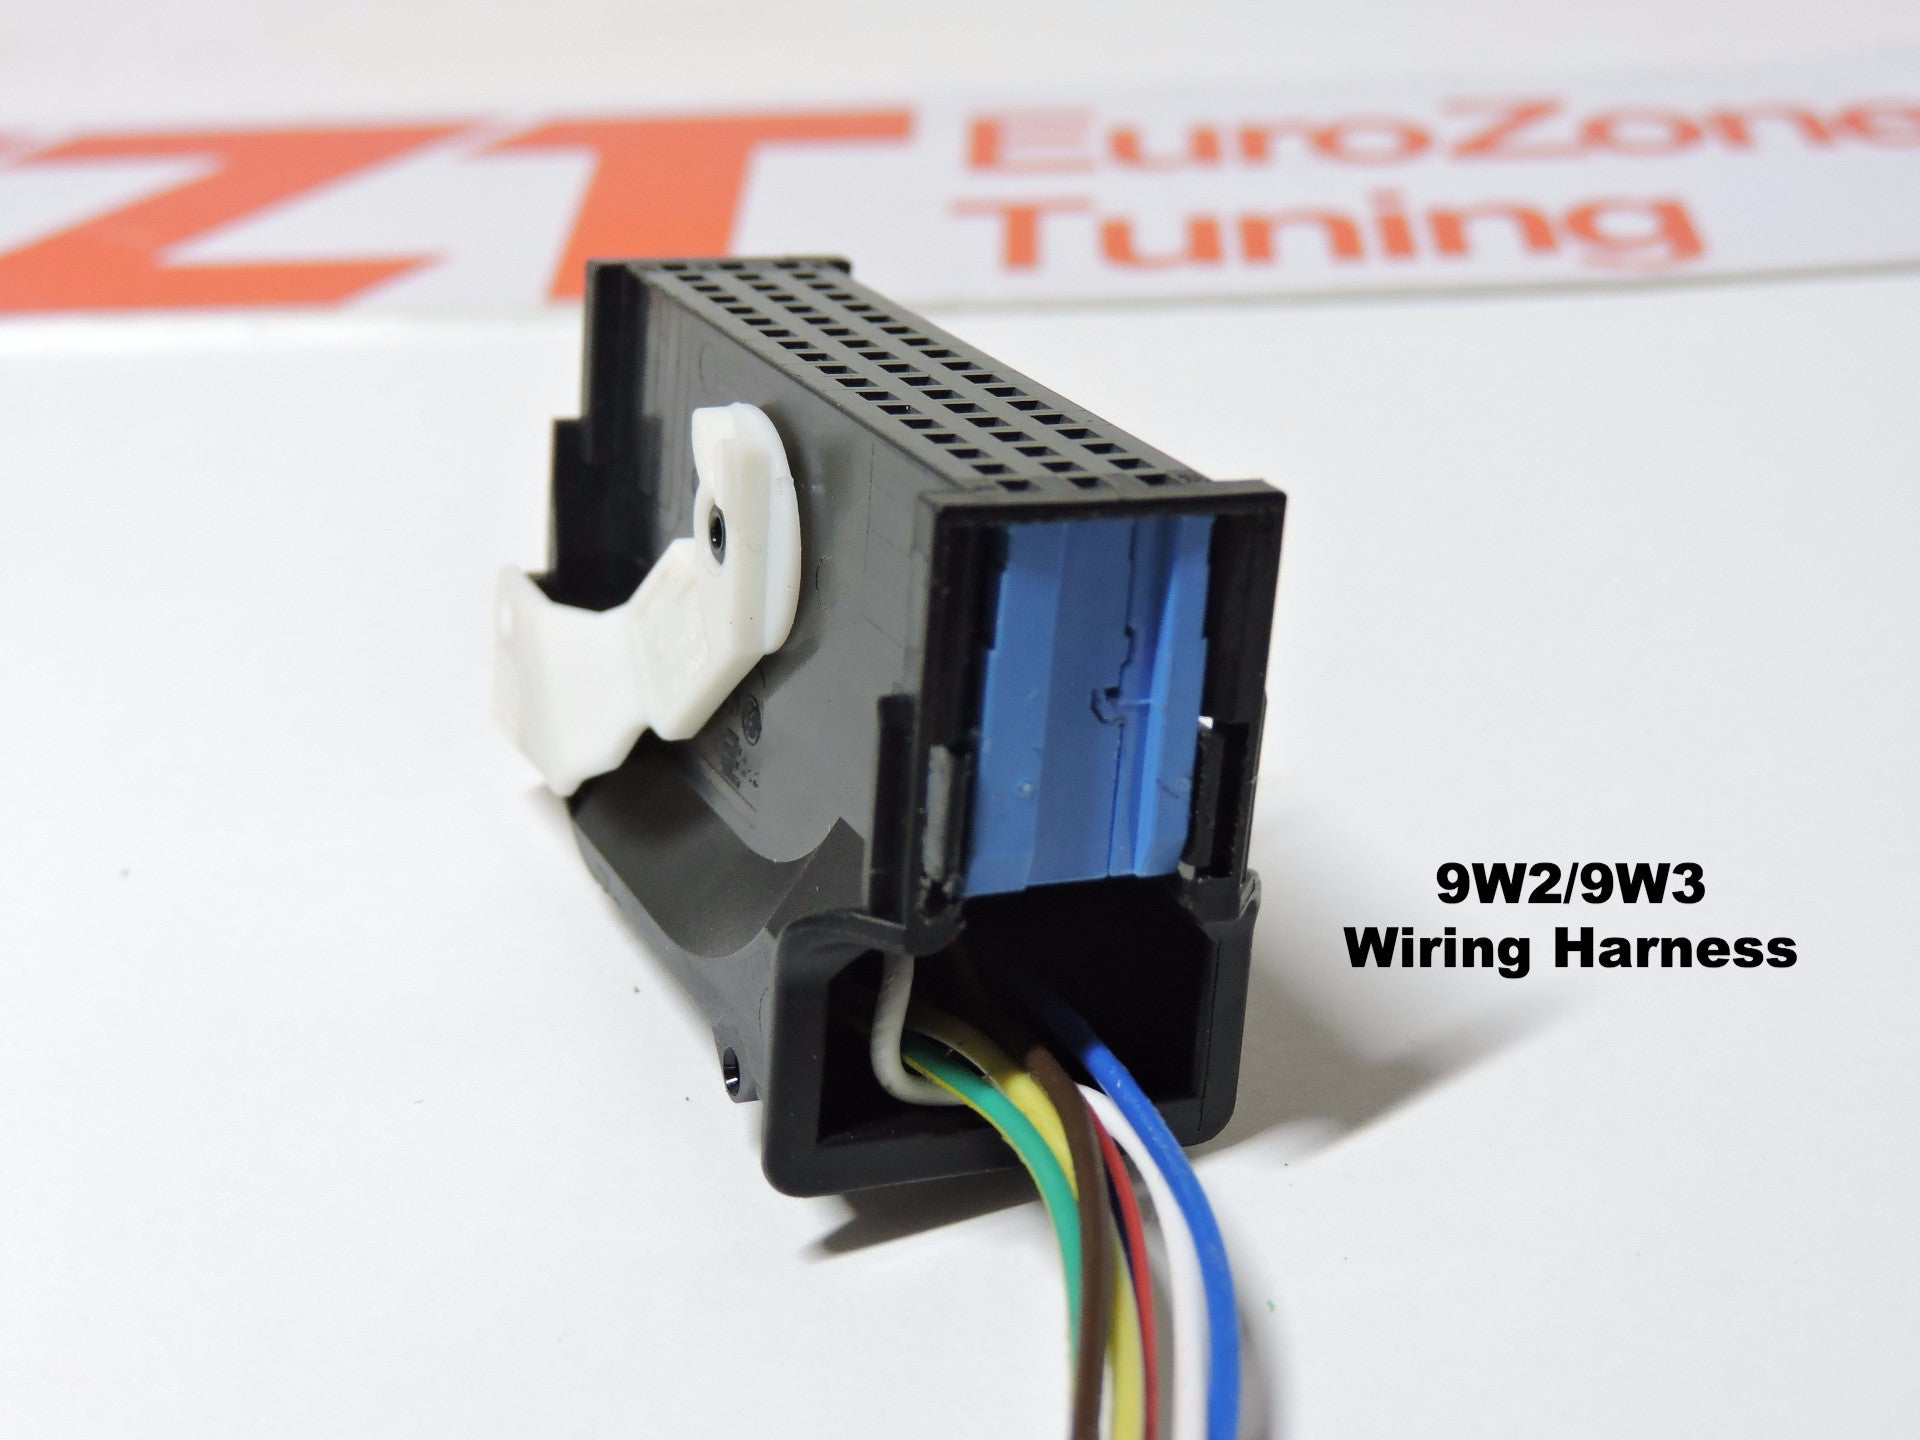 DSCN7177?v=1502228536 9w7 stereo wiring kit (mono 9w2 to stereo 9w7) eurozone tuning  at gsmportal.co